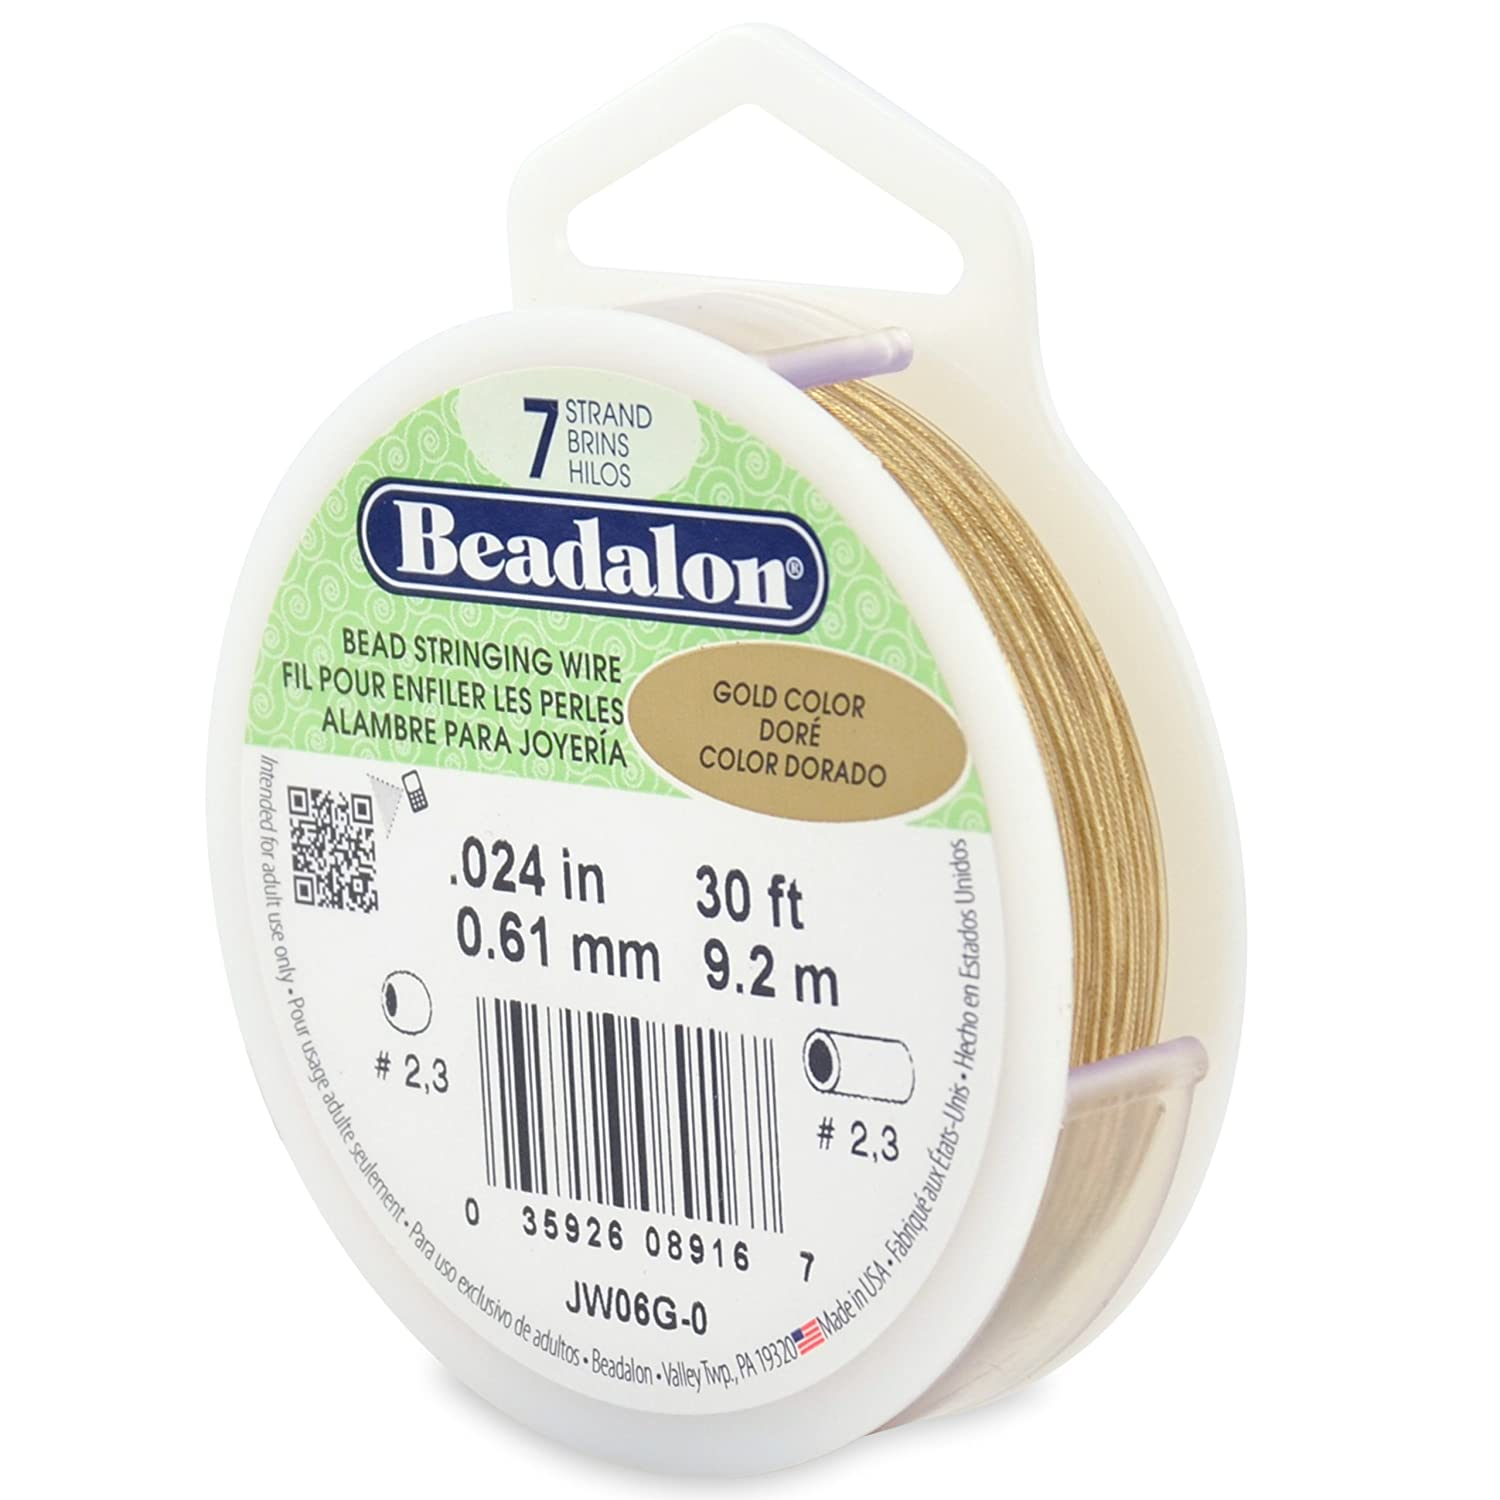 Beadalon 7-Strand Stainless Steel 0.024-Inch Bead Stringing Wire, 30-Feet, Gold Color